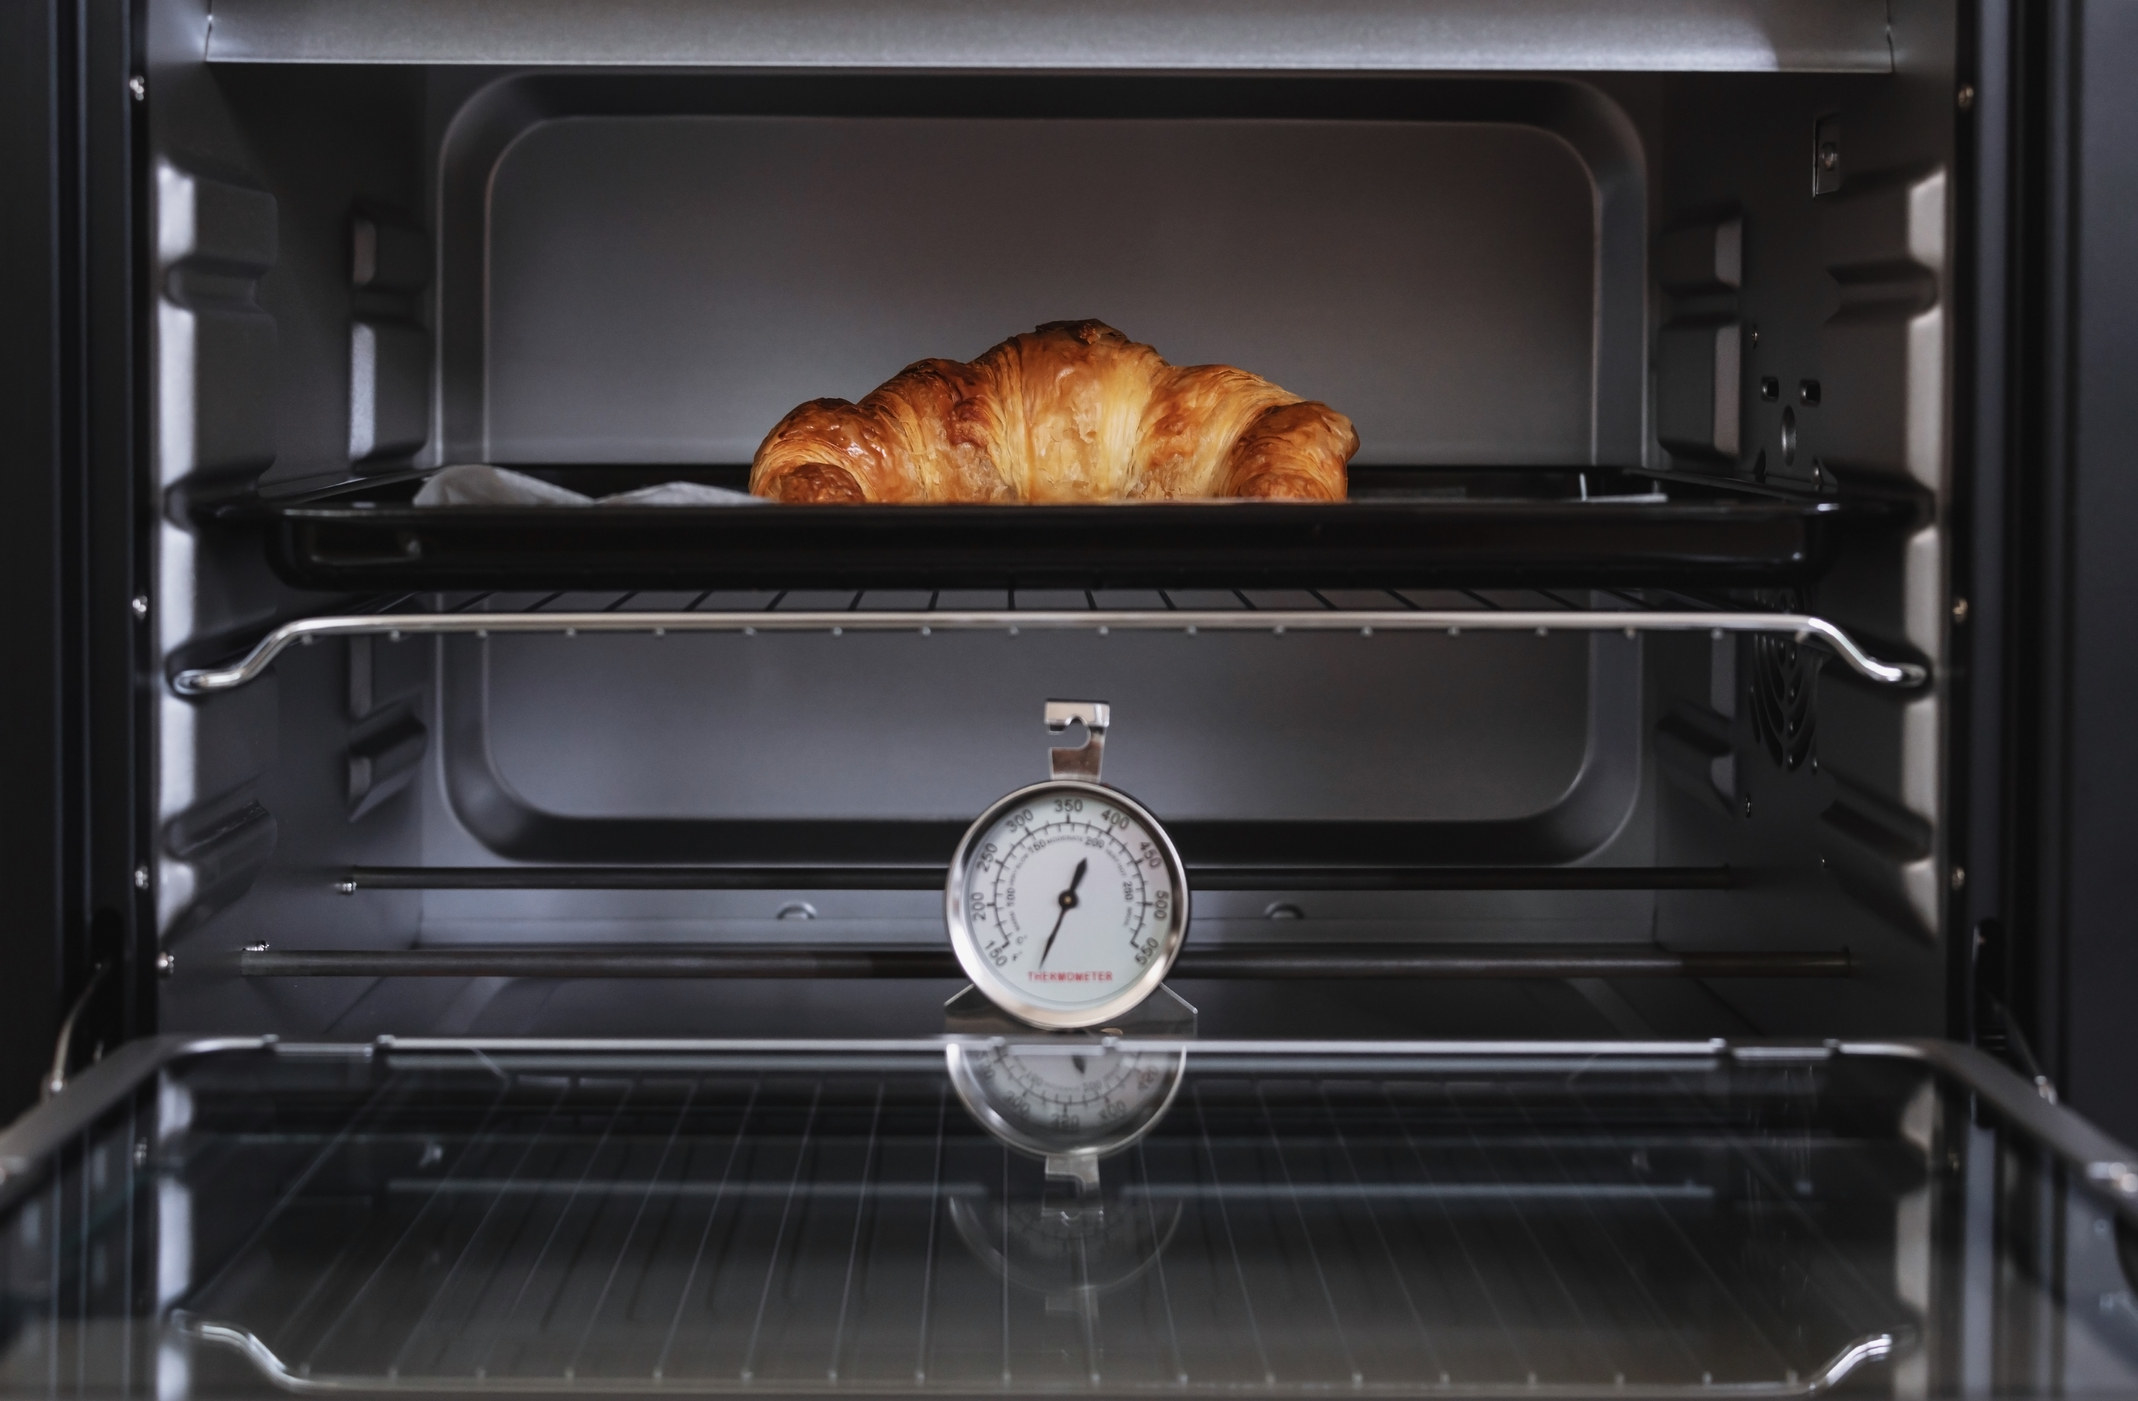 An oven thermometer in the oven as a croissant bakes